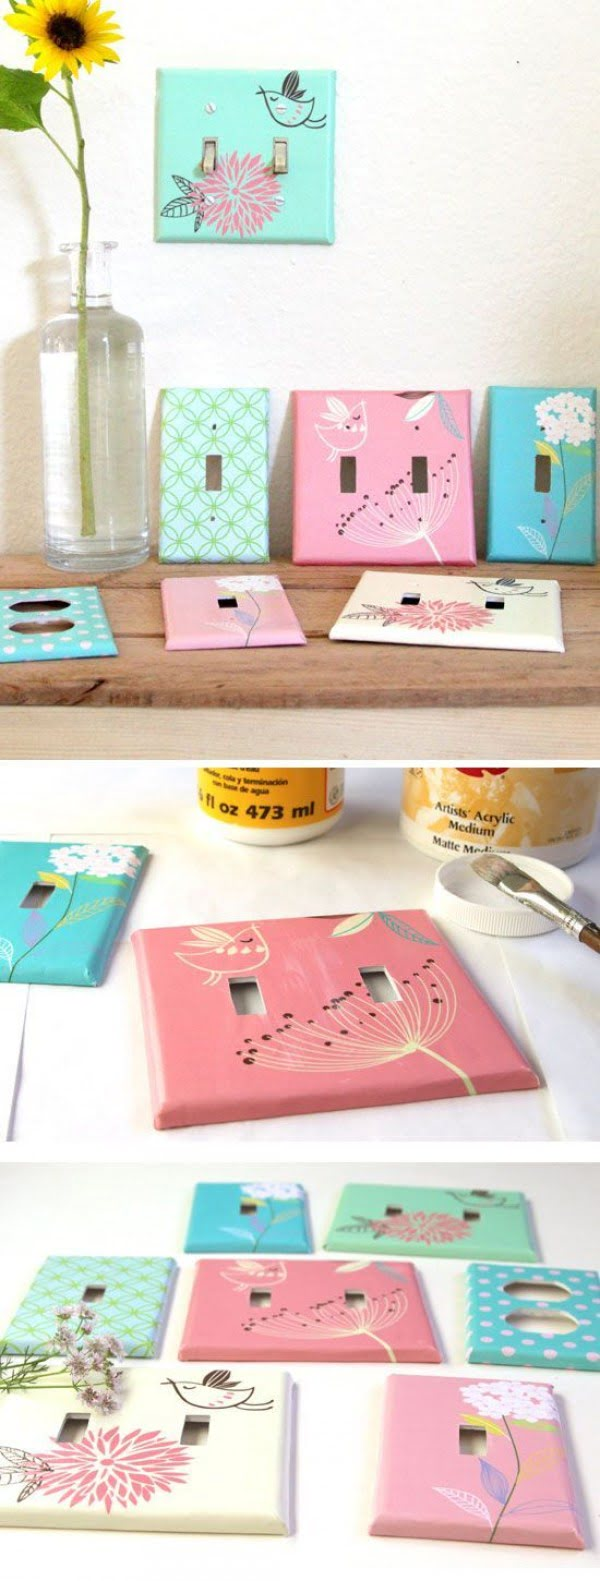 How to make neat #DIY designer light switch plates. Worth a try! #homedecorideas